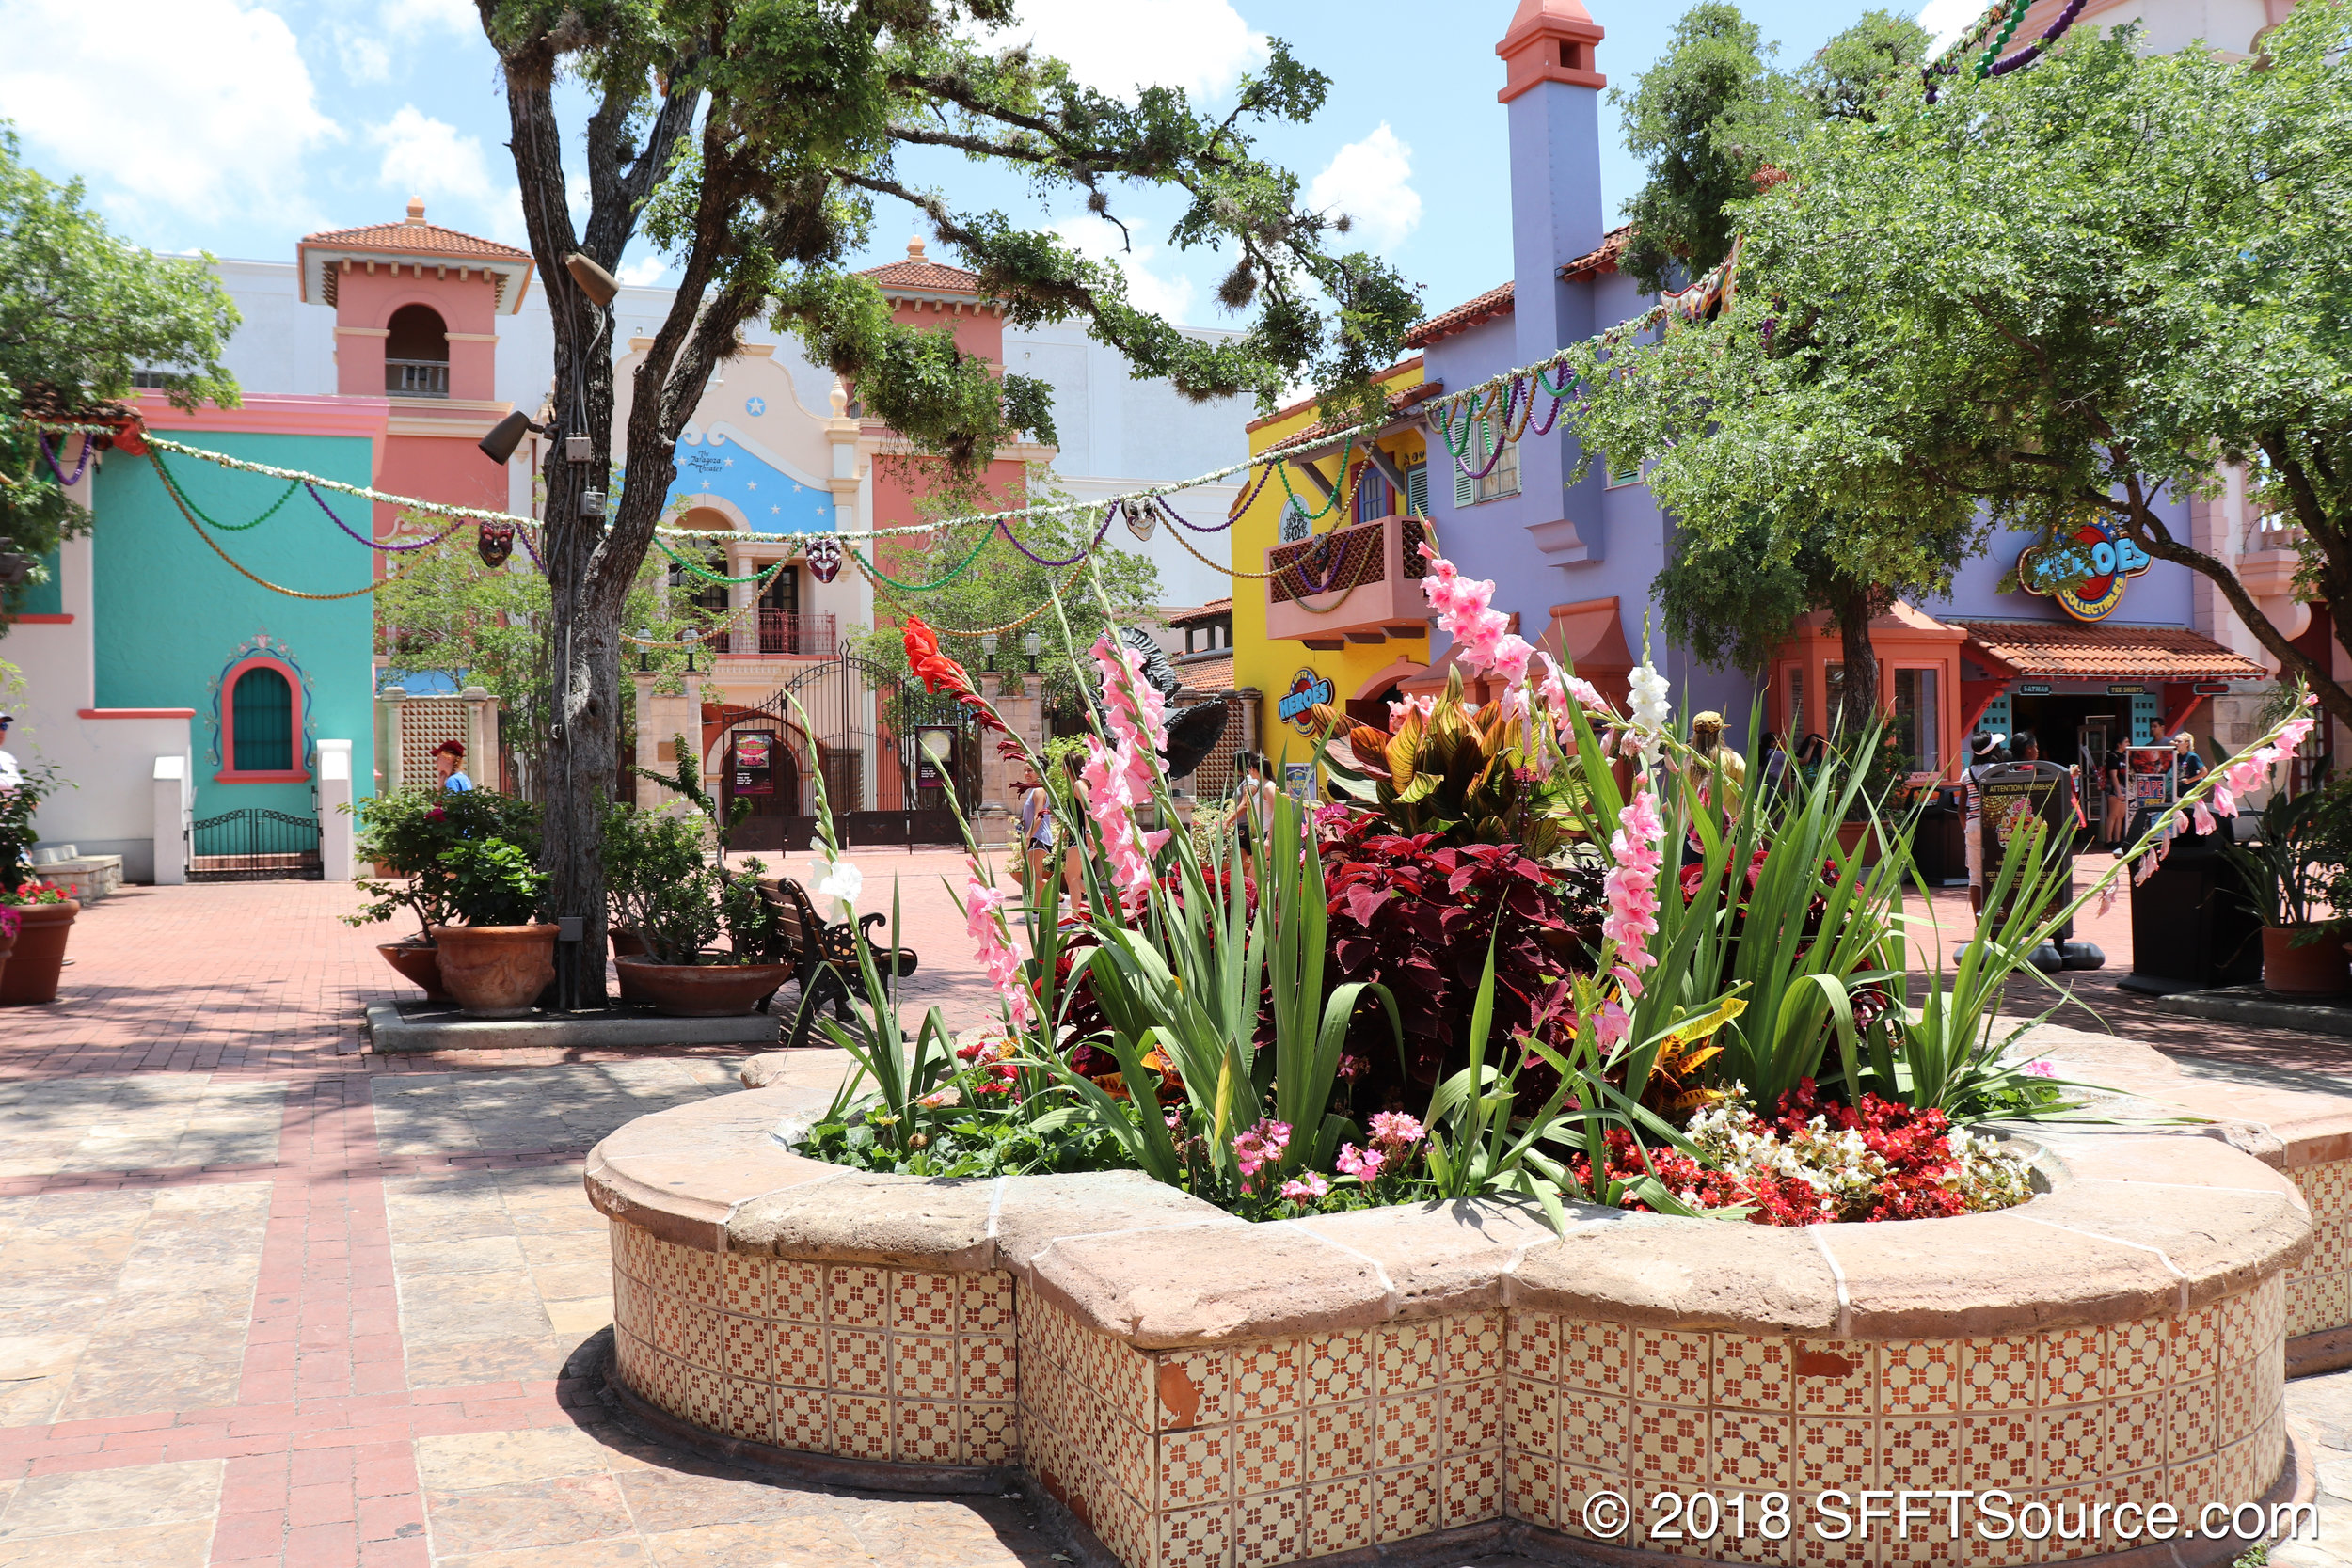 Los Festivales is quite a colorful area within the park.